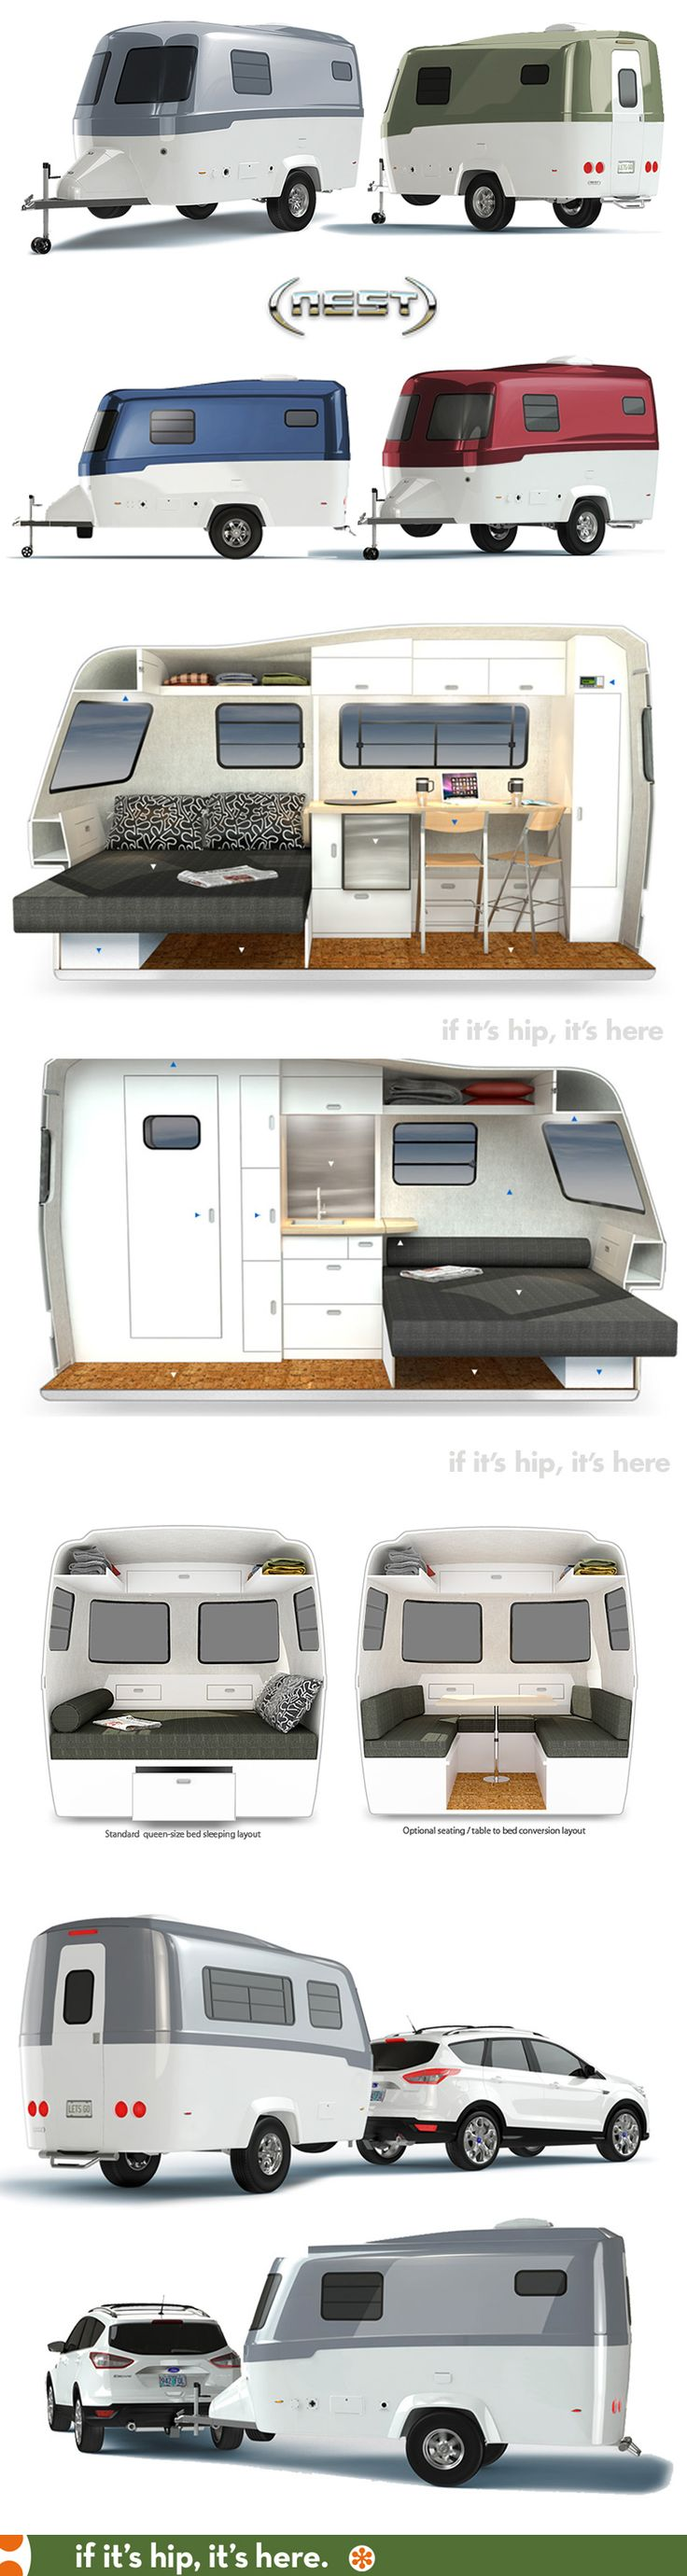 The new modern streamlined customizable trailer, the Nest, is loaded with features and is available for pre-order.